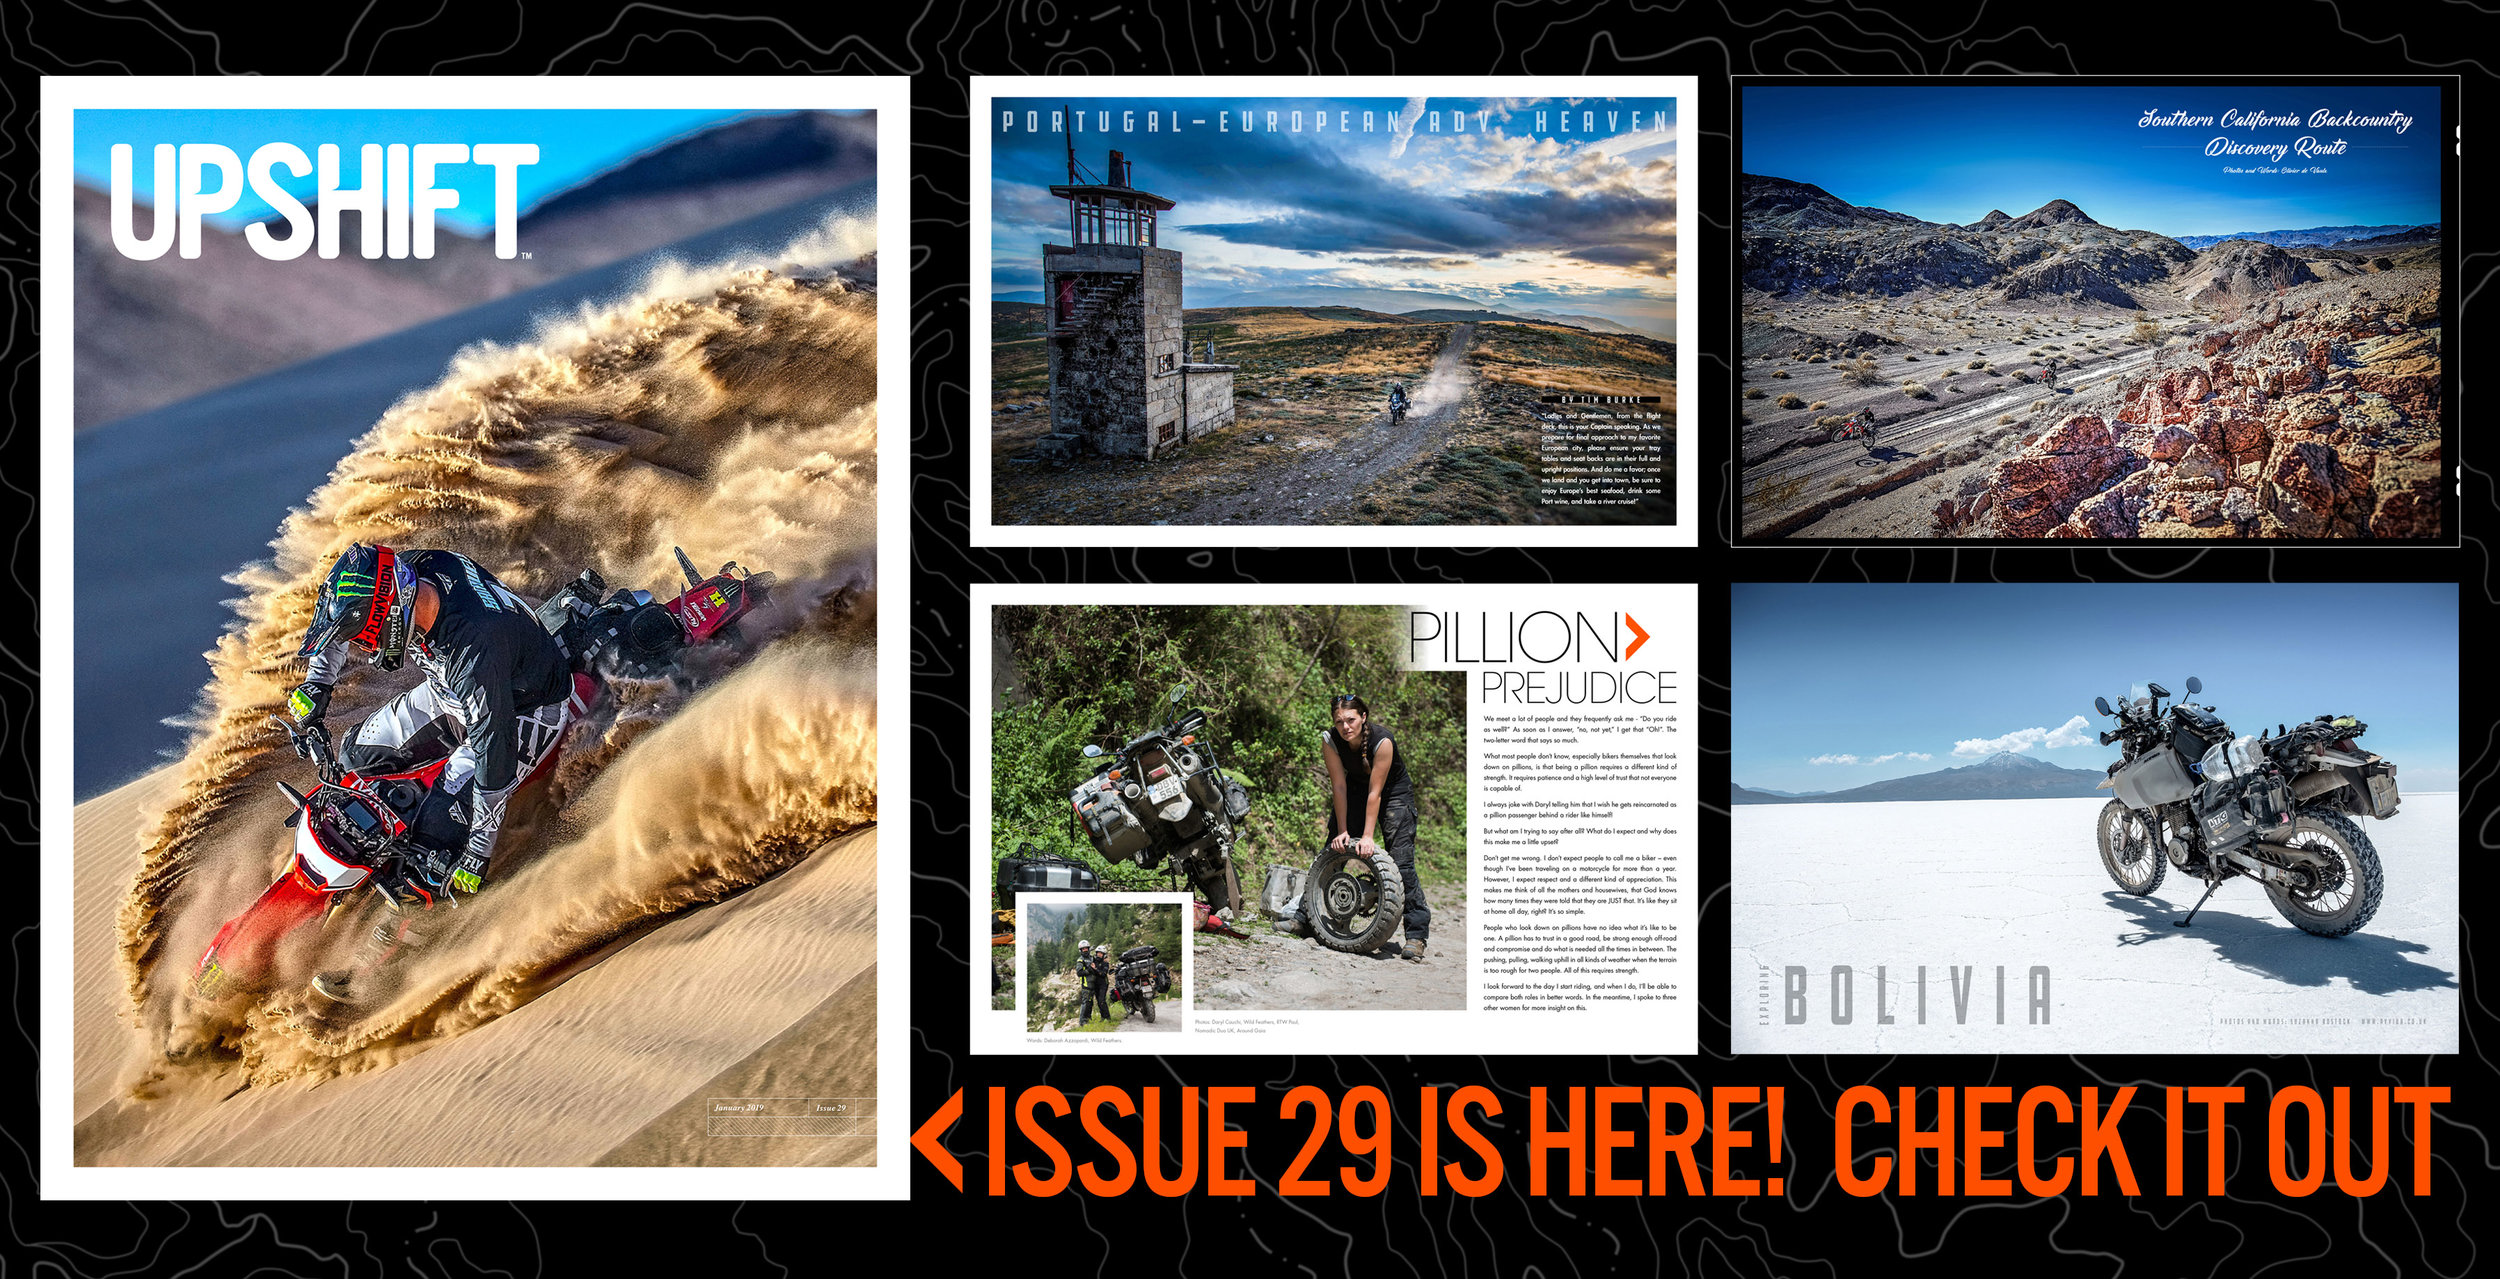 ISSUE 29 HOME.jpg